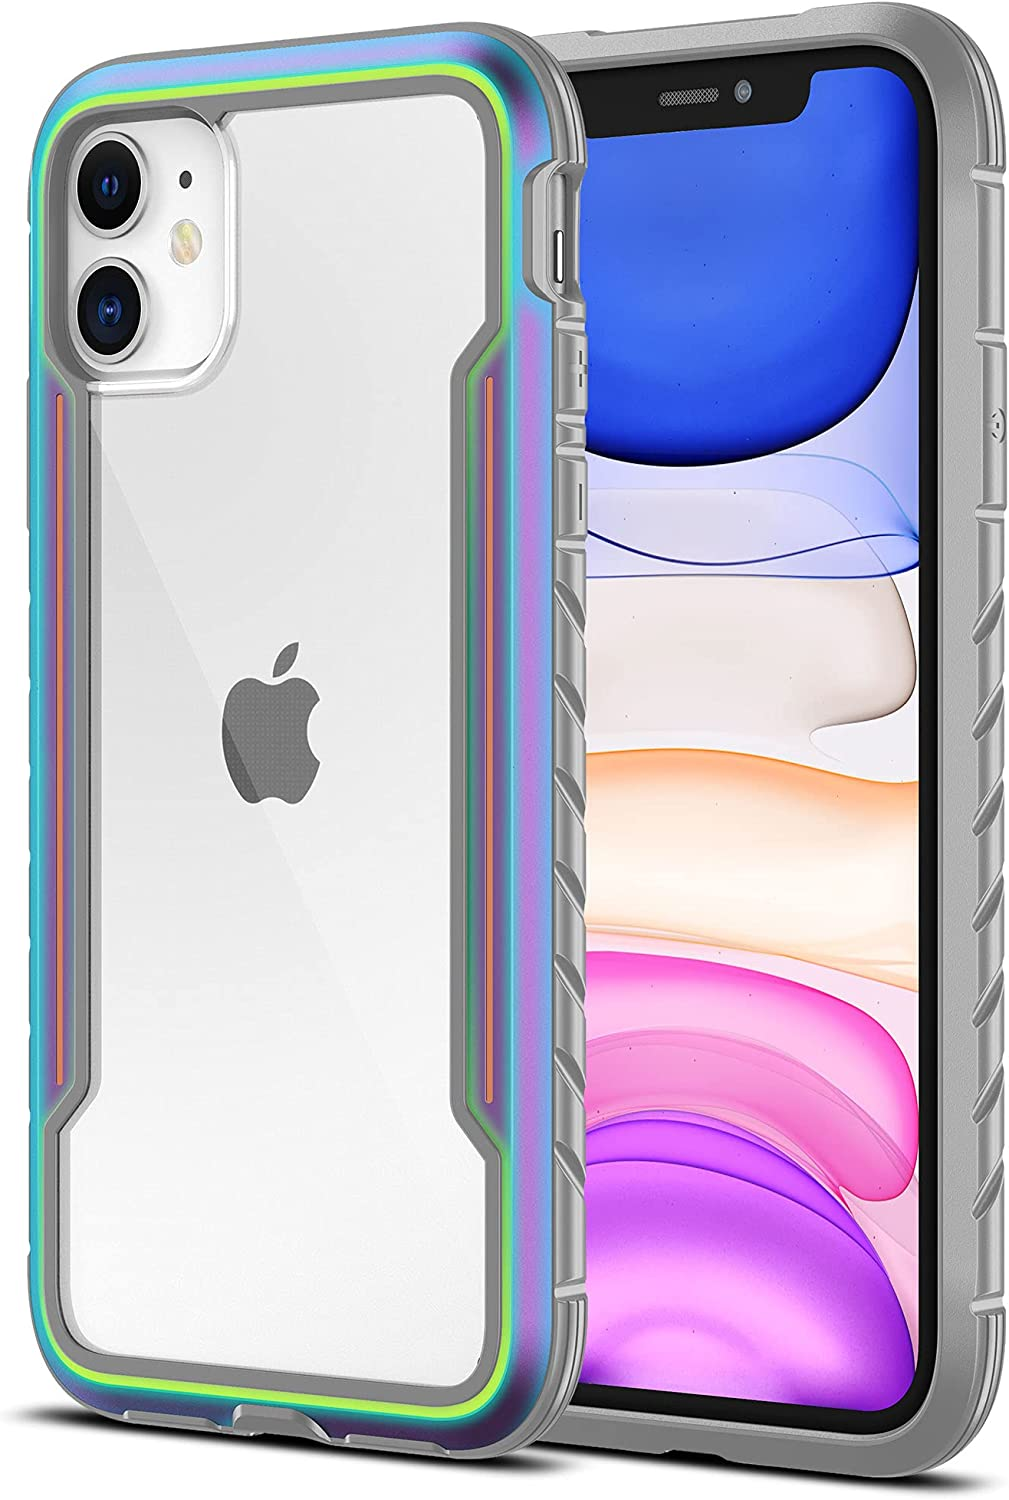 MRYUESG for iPhone 11 Case, Aluminum Alloy Frame, Silicone Soft Bumper, Clear Hard Back Panel, Military Grade Shock-Proof, Heavy Duty Protective Cover, for i-Phone11Case(6.1 Inch) - Iridescent